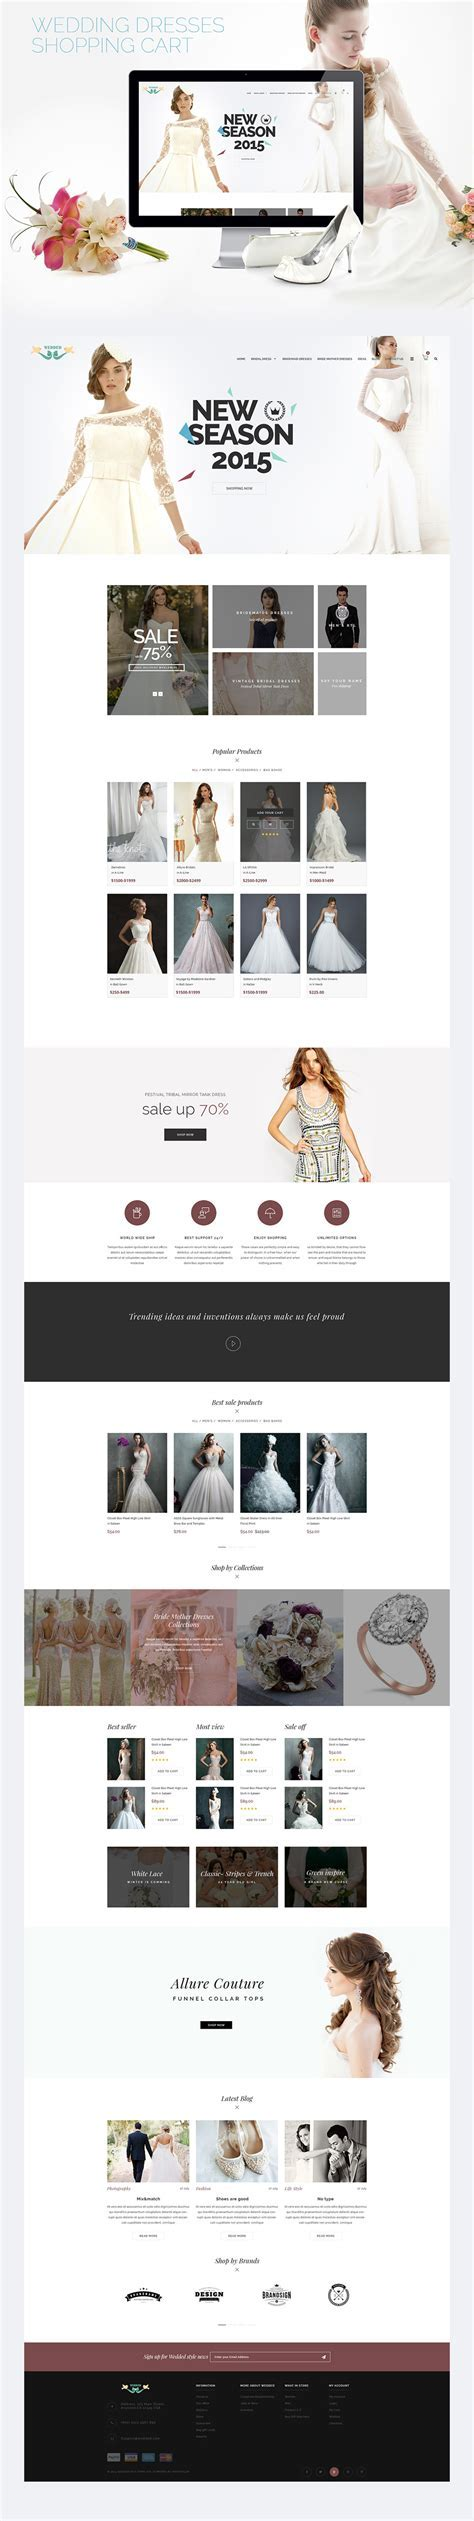 Wedding eCommerce Shopping Website PSD Template Download